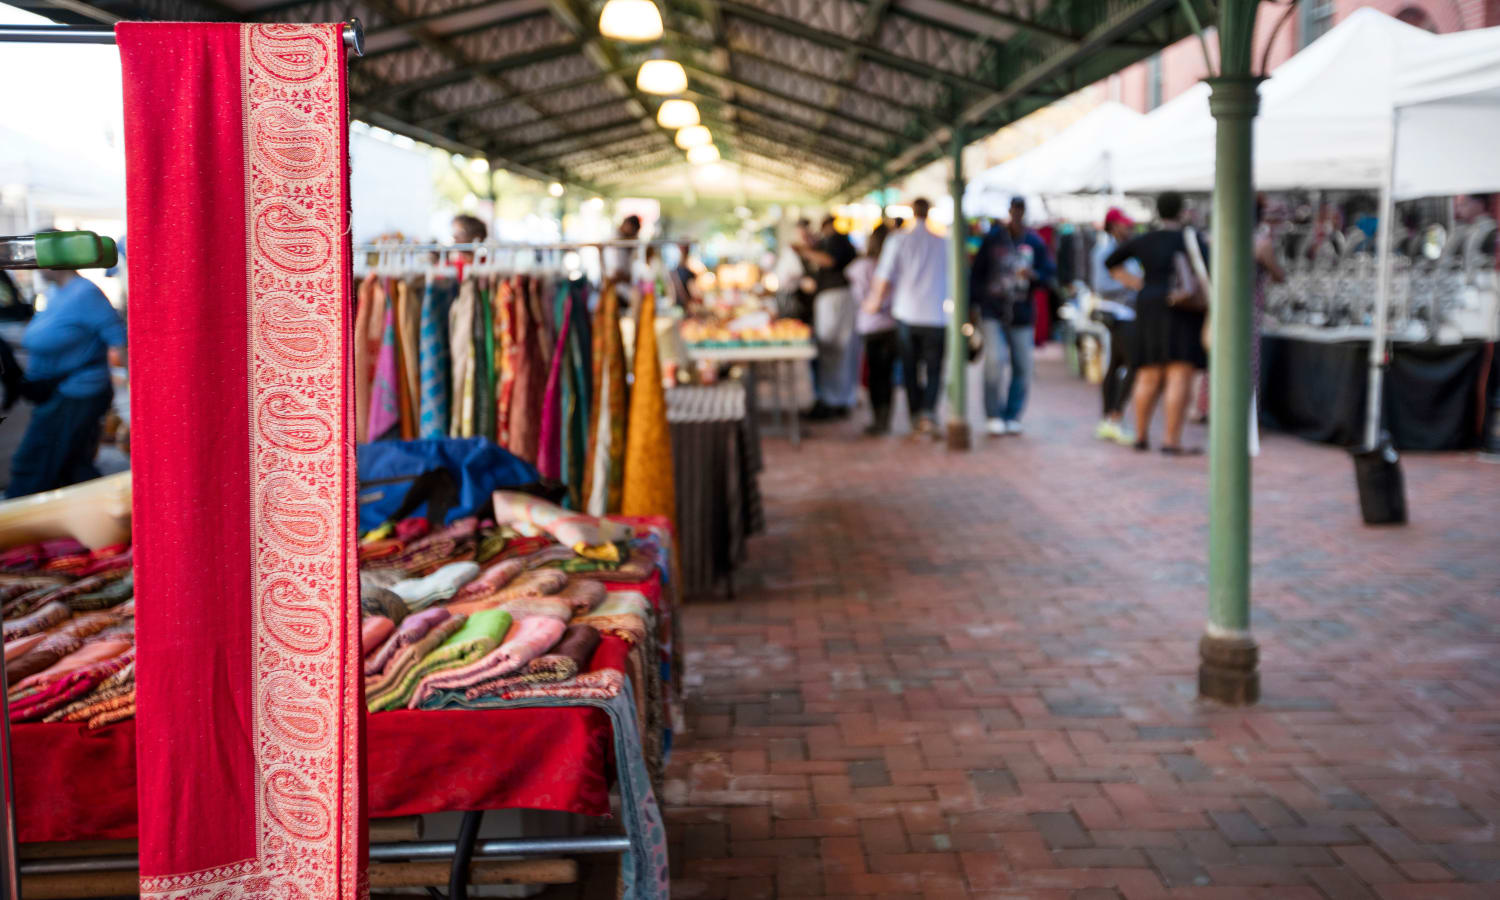 Outdoor markets market near The Bixby in Washington, District of Columbia